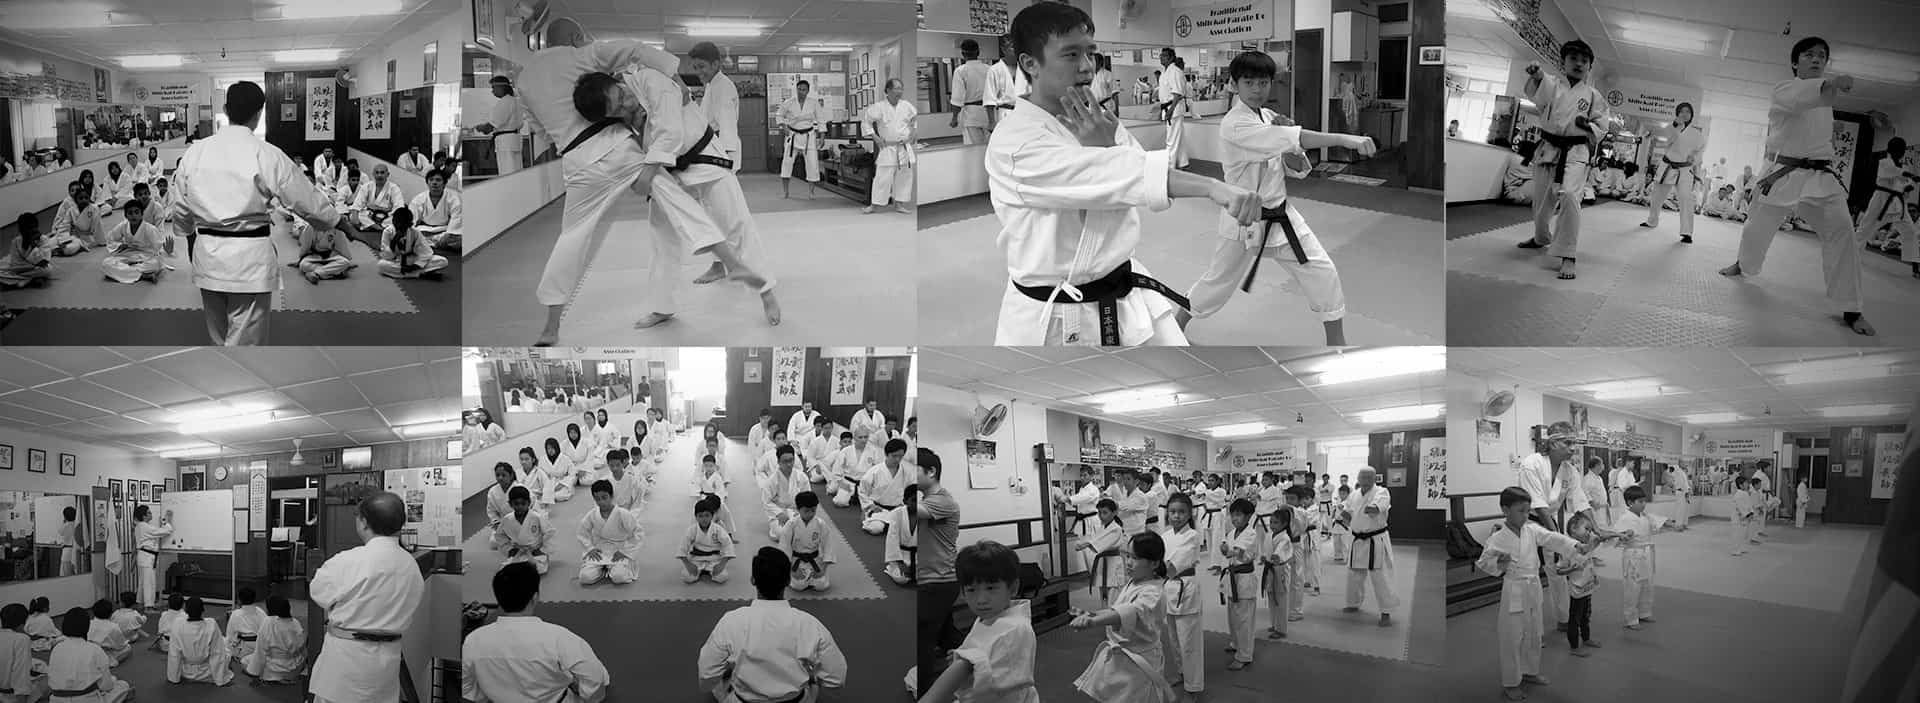 Karate Club KL